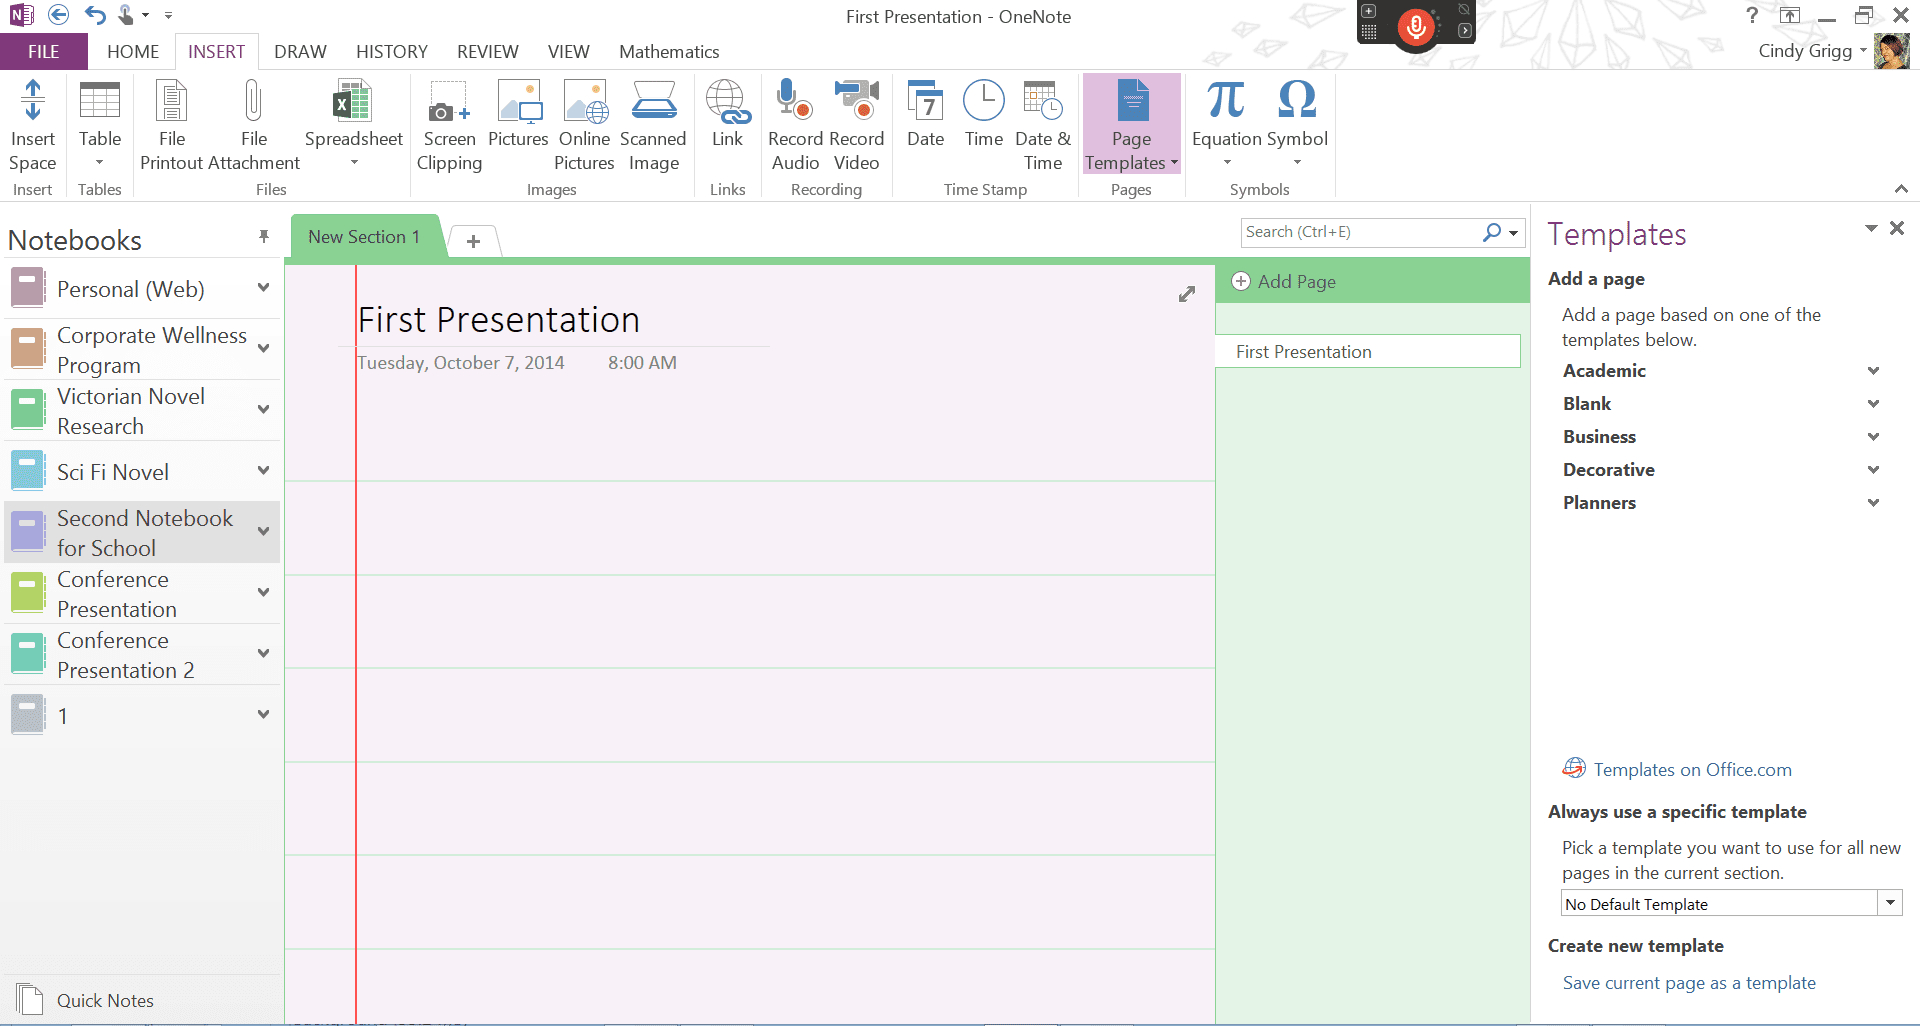 Beautiful Onenote Project Management Template | Template Intended For Project Management Templates For Onenote